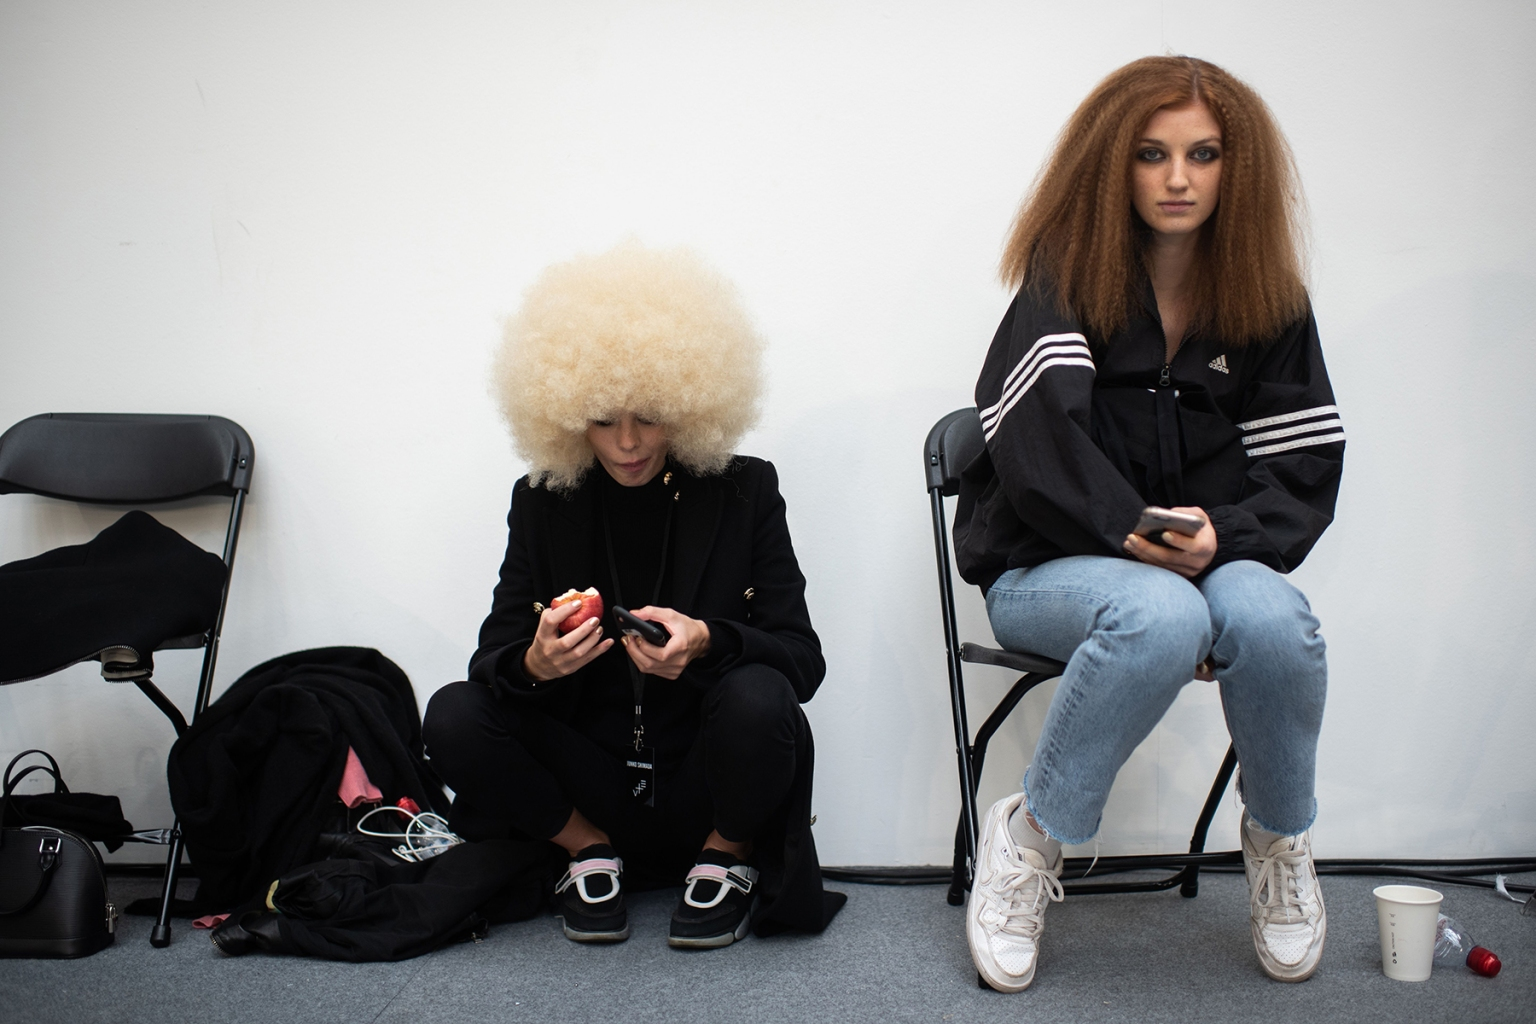 Models wait backstage prior to the Junko Shimada Spring-Summer Ready-to-Wear collection fashion show in Paris on Oct. 2. -/AFP/Getty Images